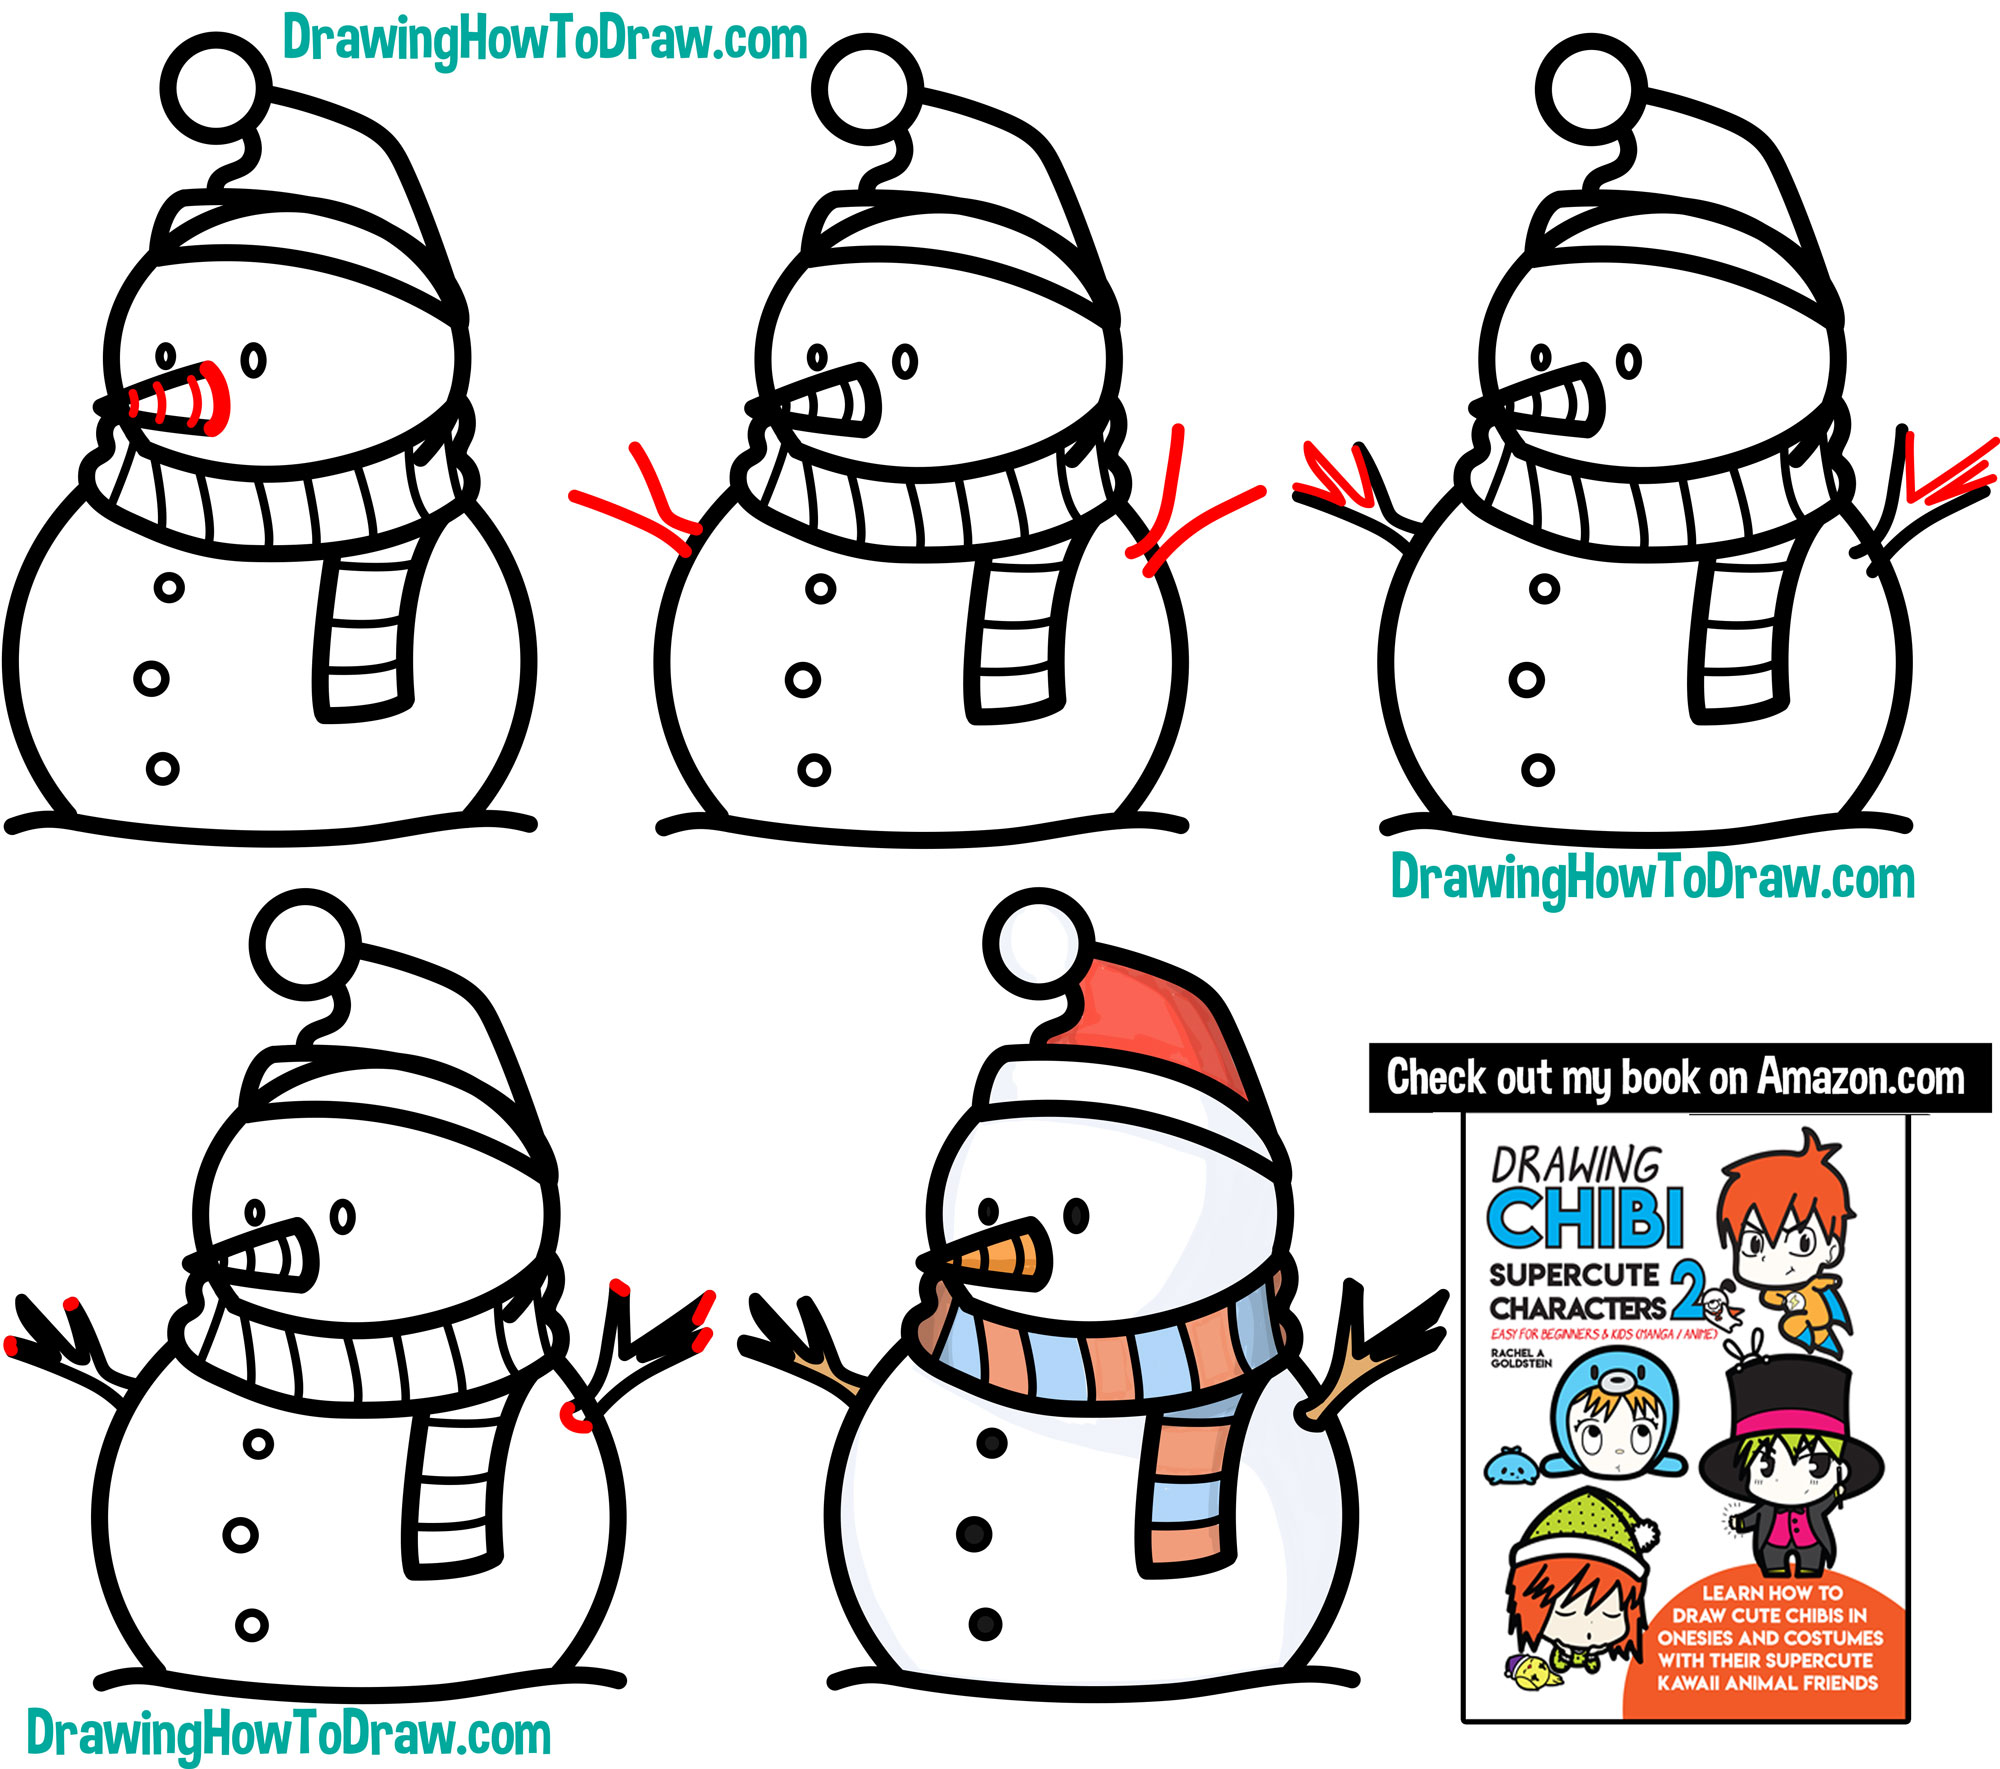 Learn How to Draw a Cute Cartoon Snowman Simple Steps Drawing Lesson for Beginners